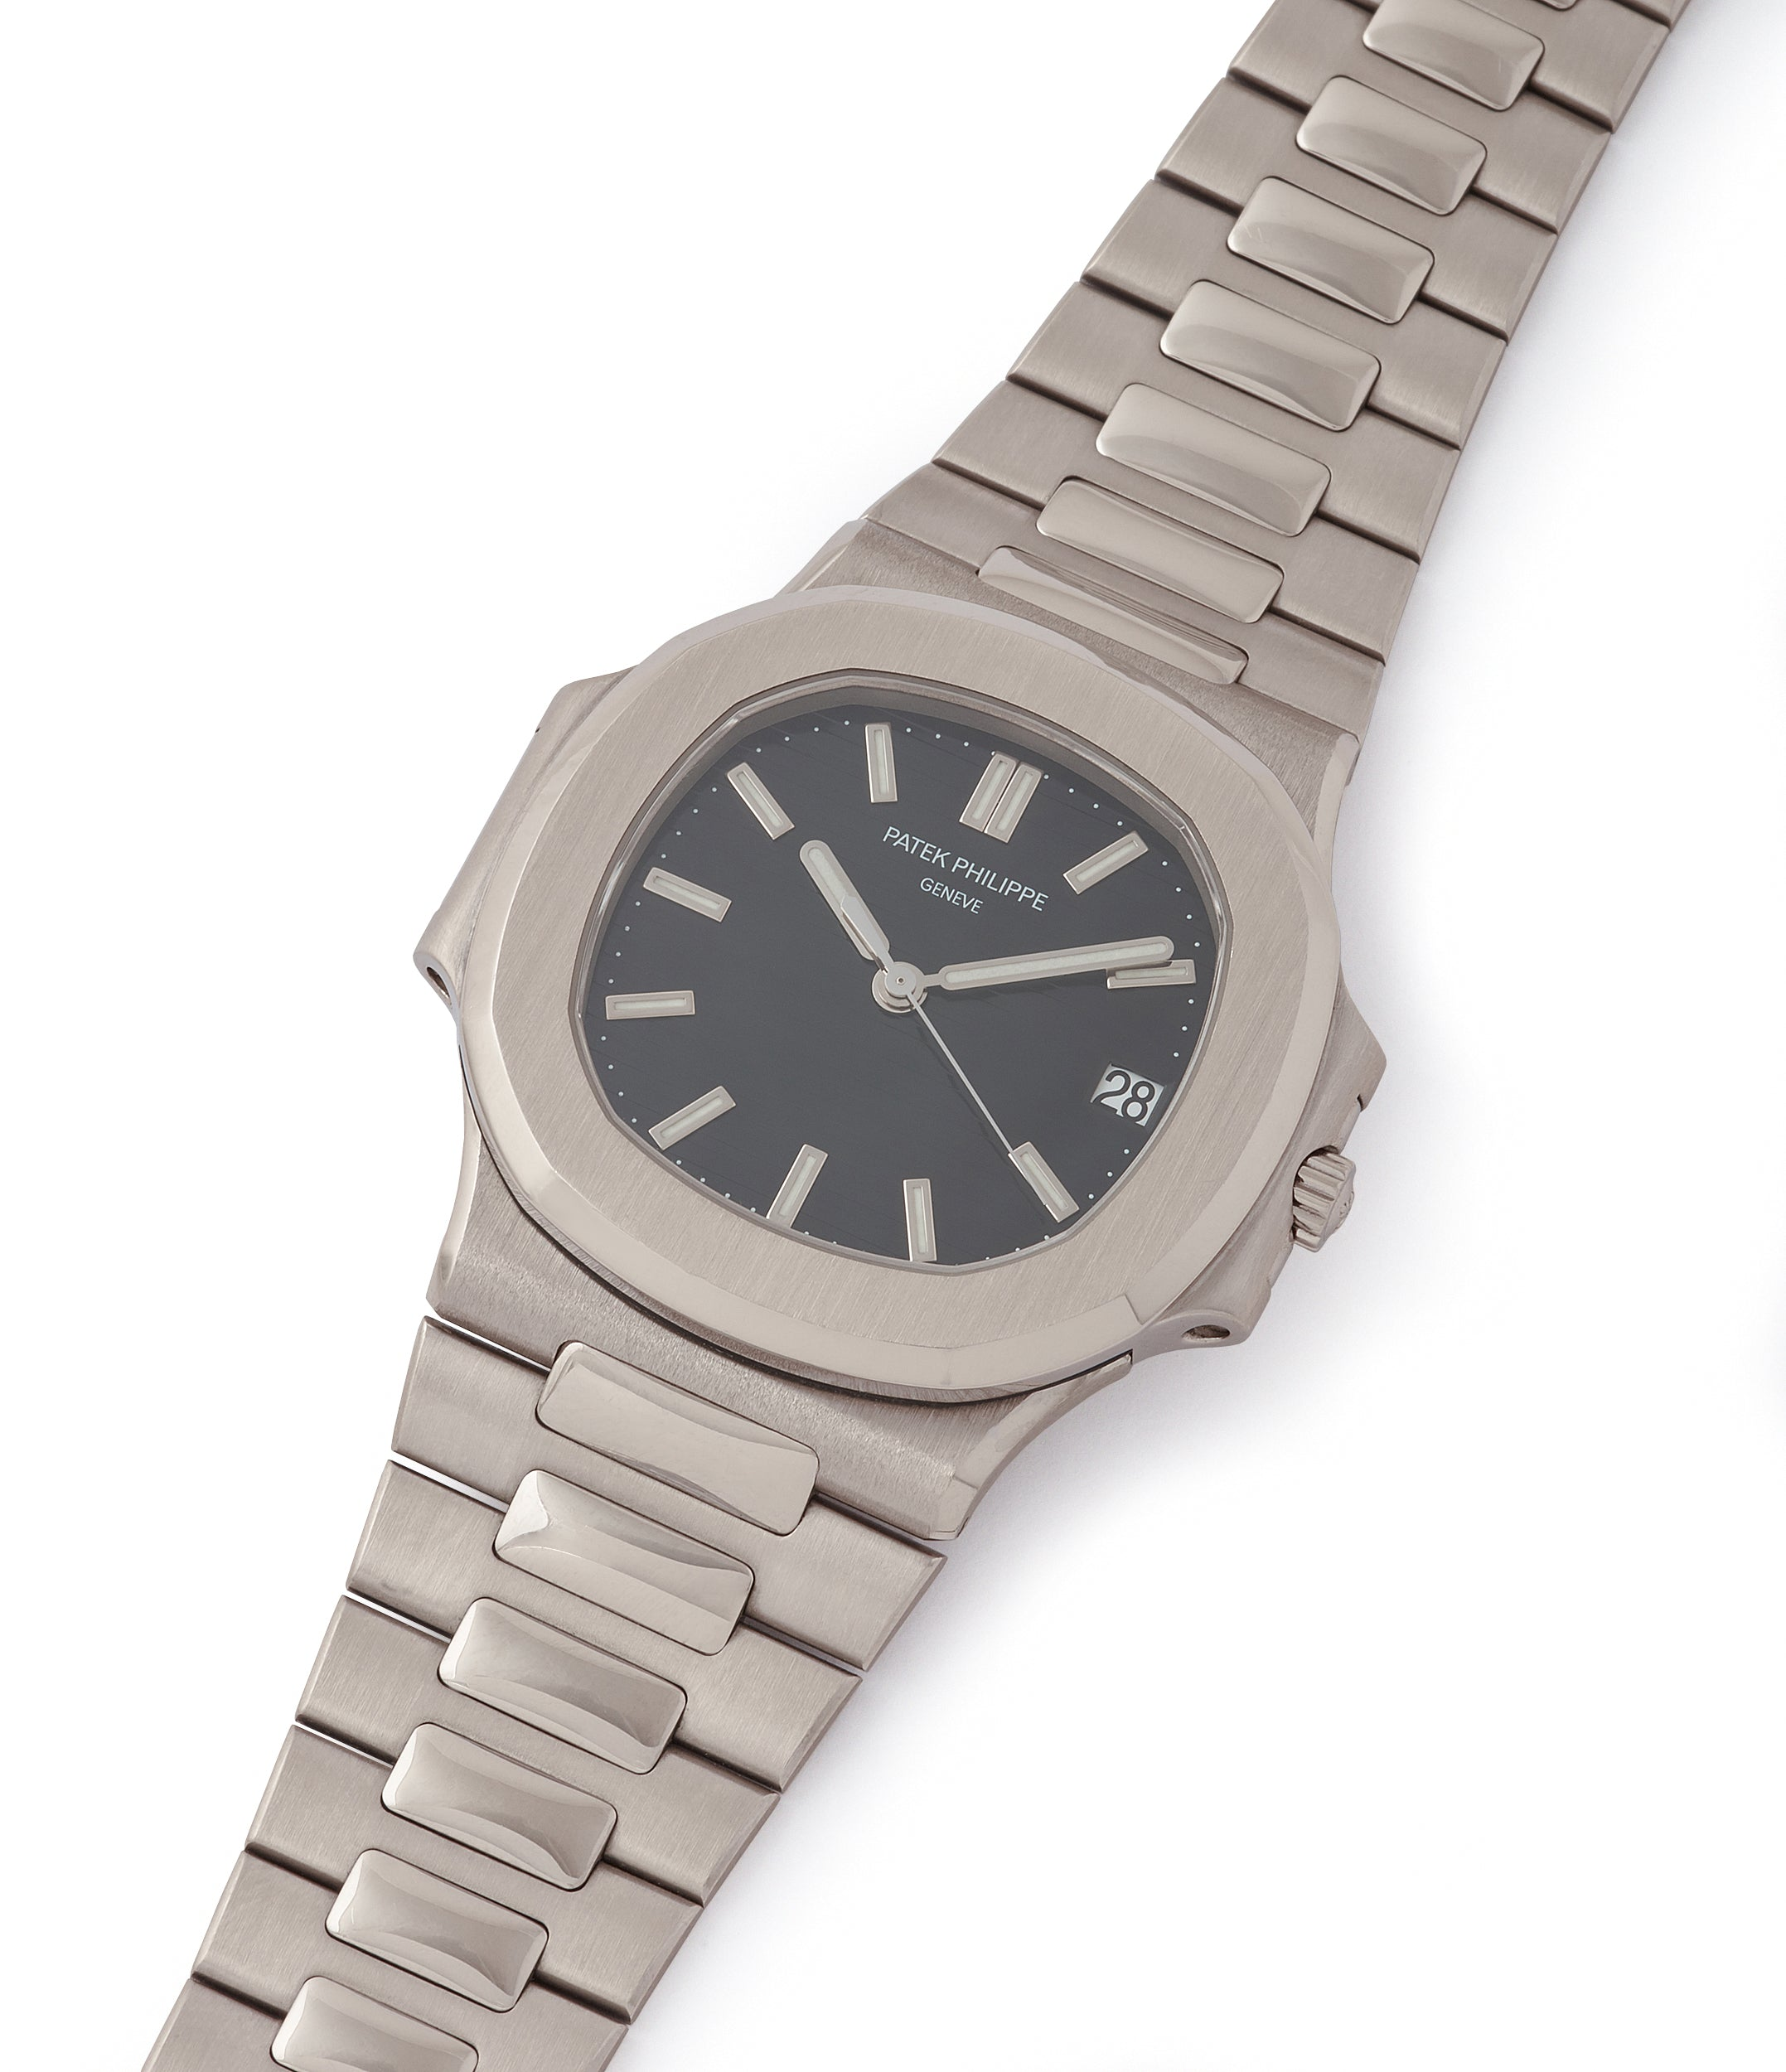 for sale Patek Philippe Nautilus 3711/1G-001 white gold pre-owned watch for sale online at A Collected Man London UK specialist of rare watches